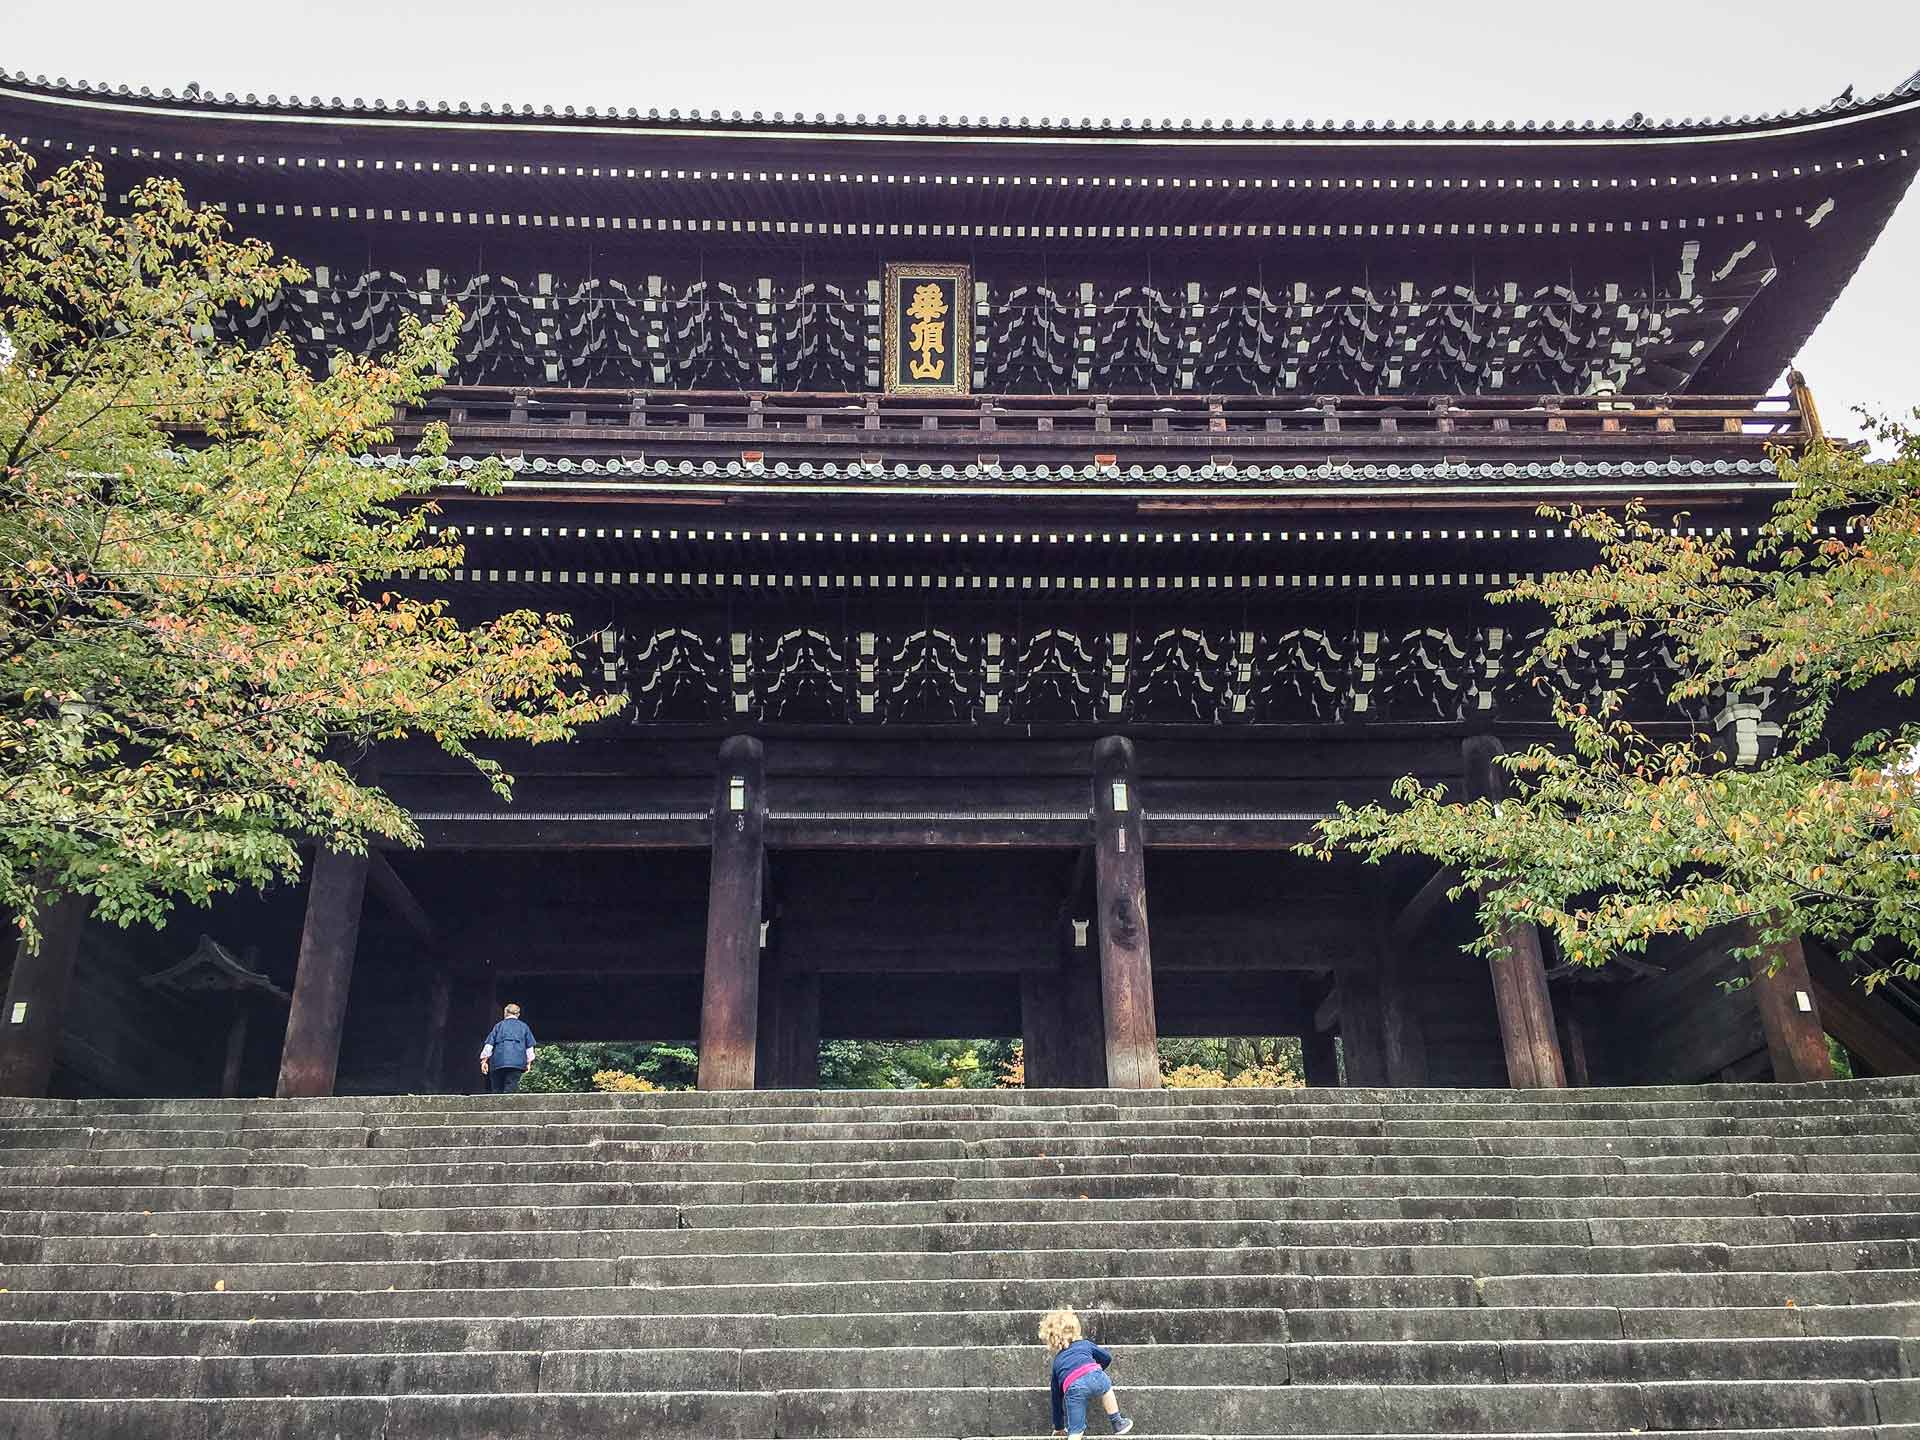 Chion-in Temple in Kyoto with children